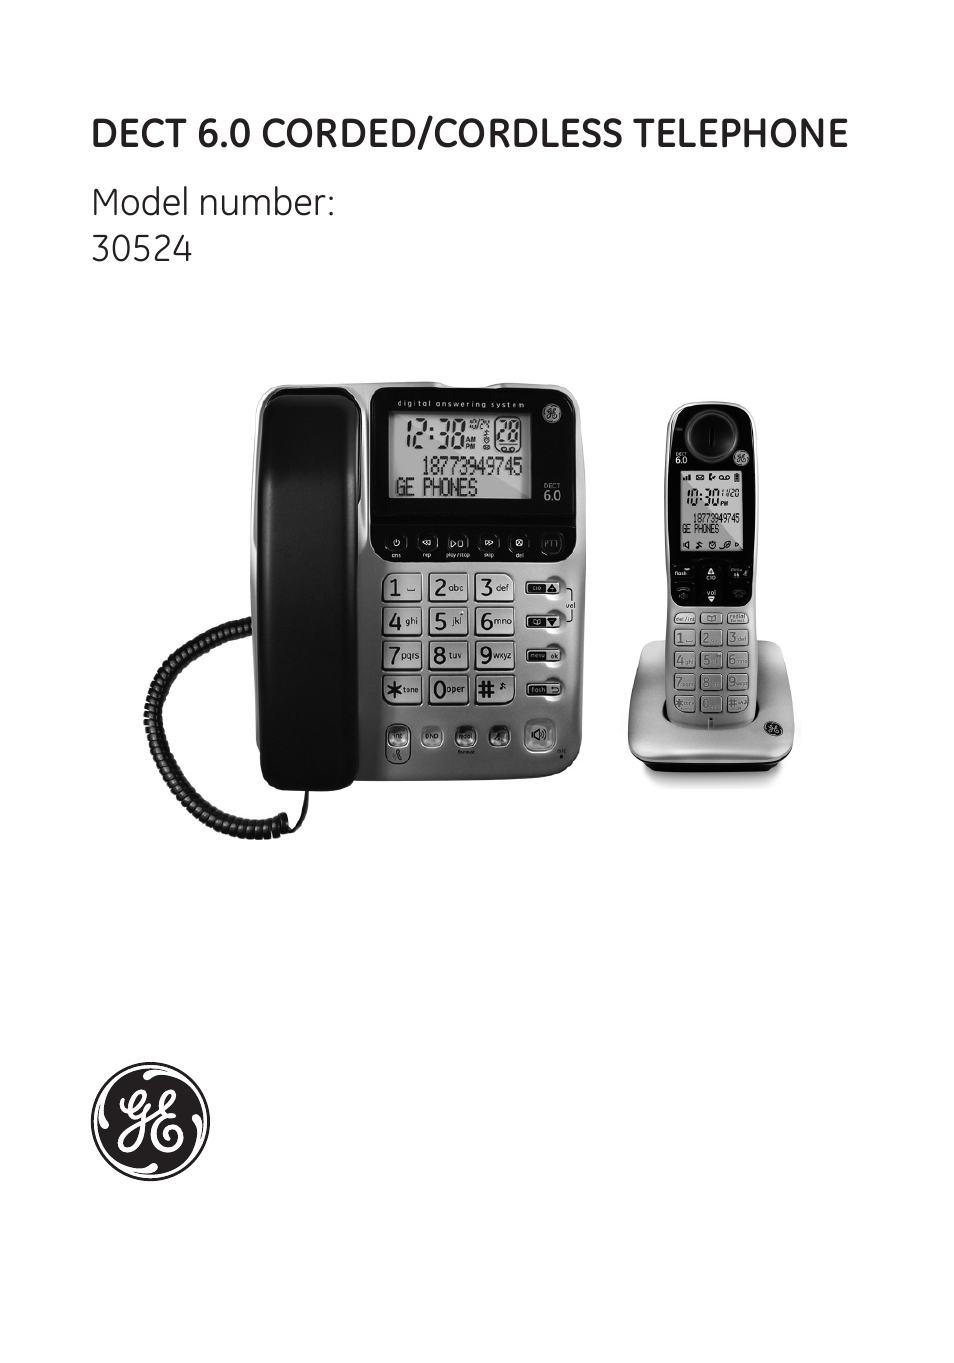 ge cordless phone user manual browse manual guides u2022 rh trufflefries co GE Cordless Wall Phones General Electric